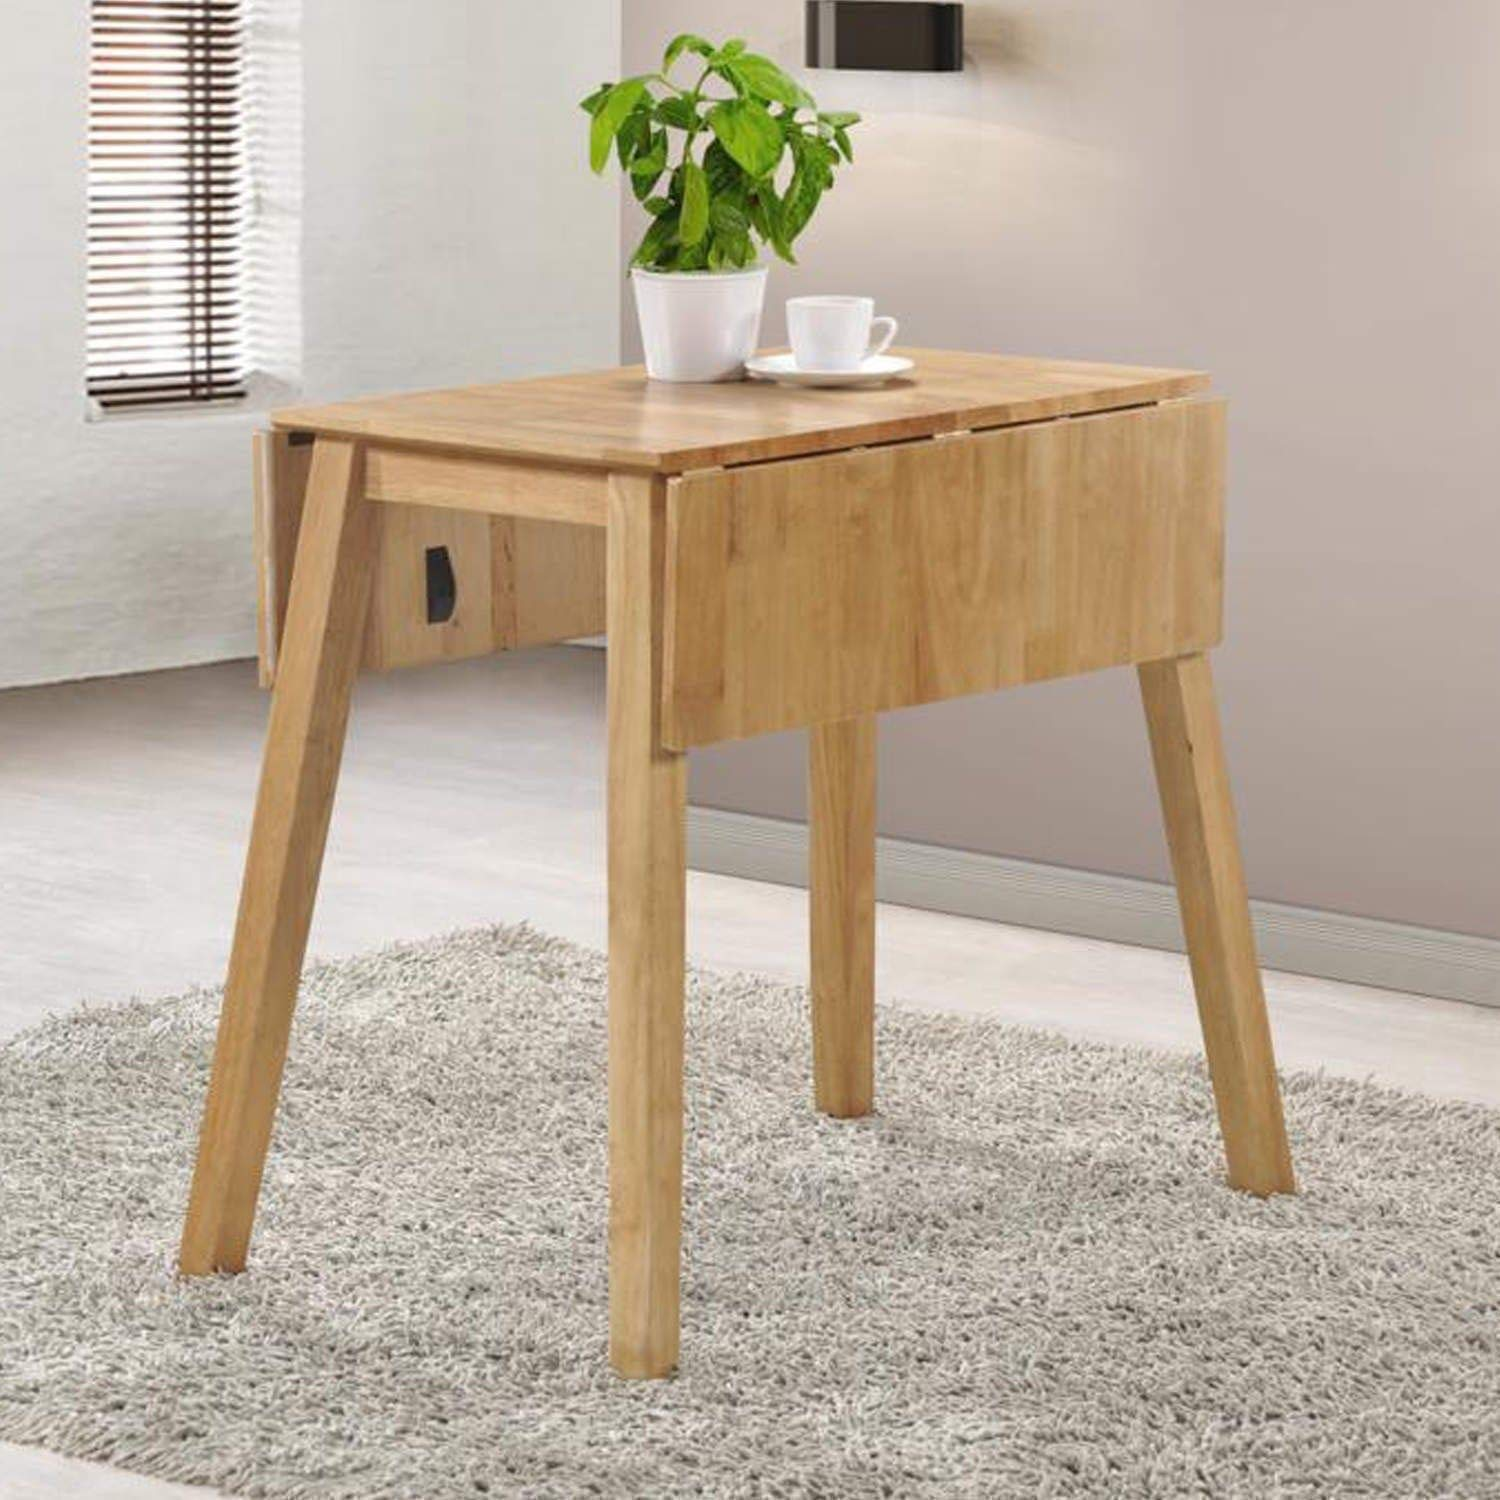 Drop Leaf Dining Table in Light Oak Solid Wood 2 Seater Kitchen